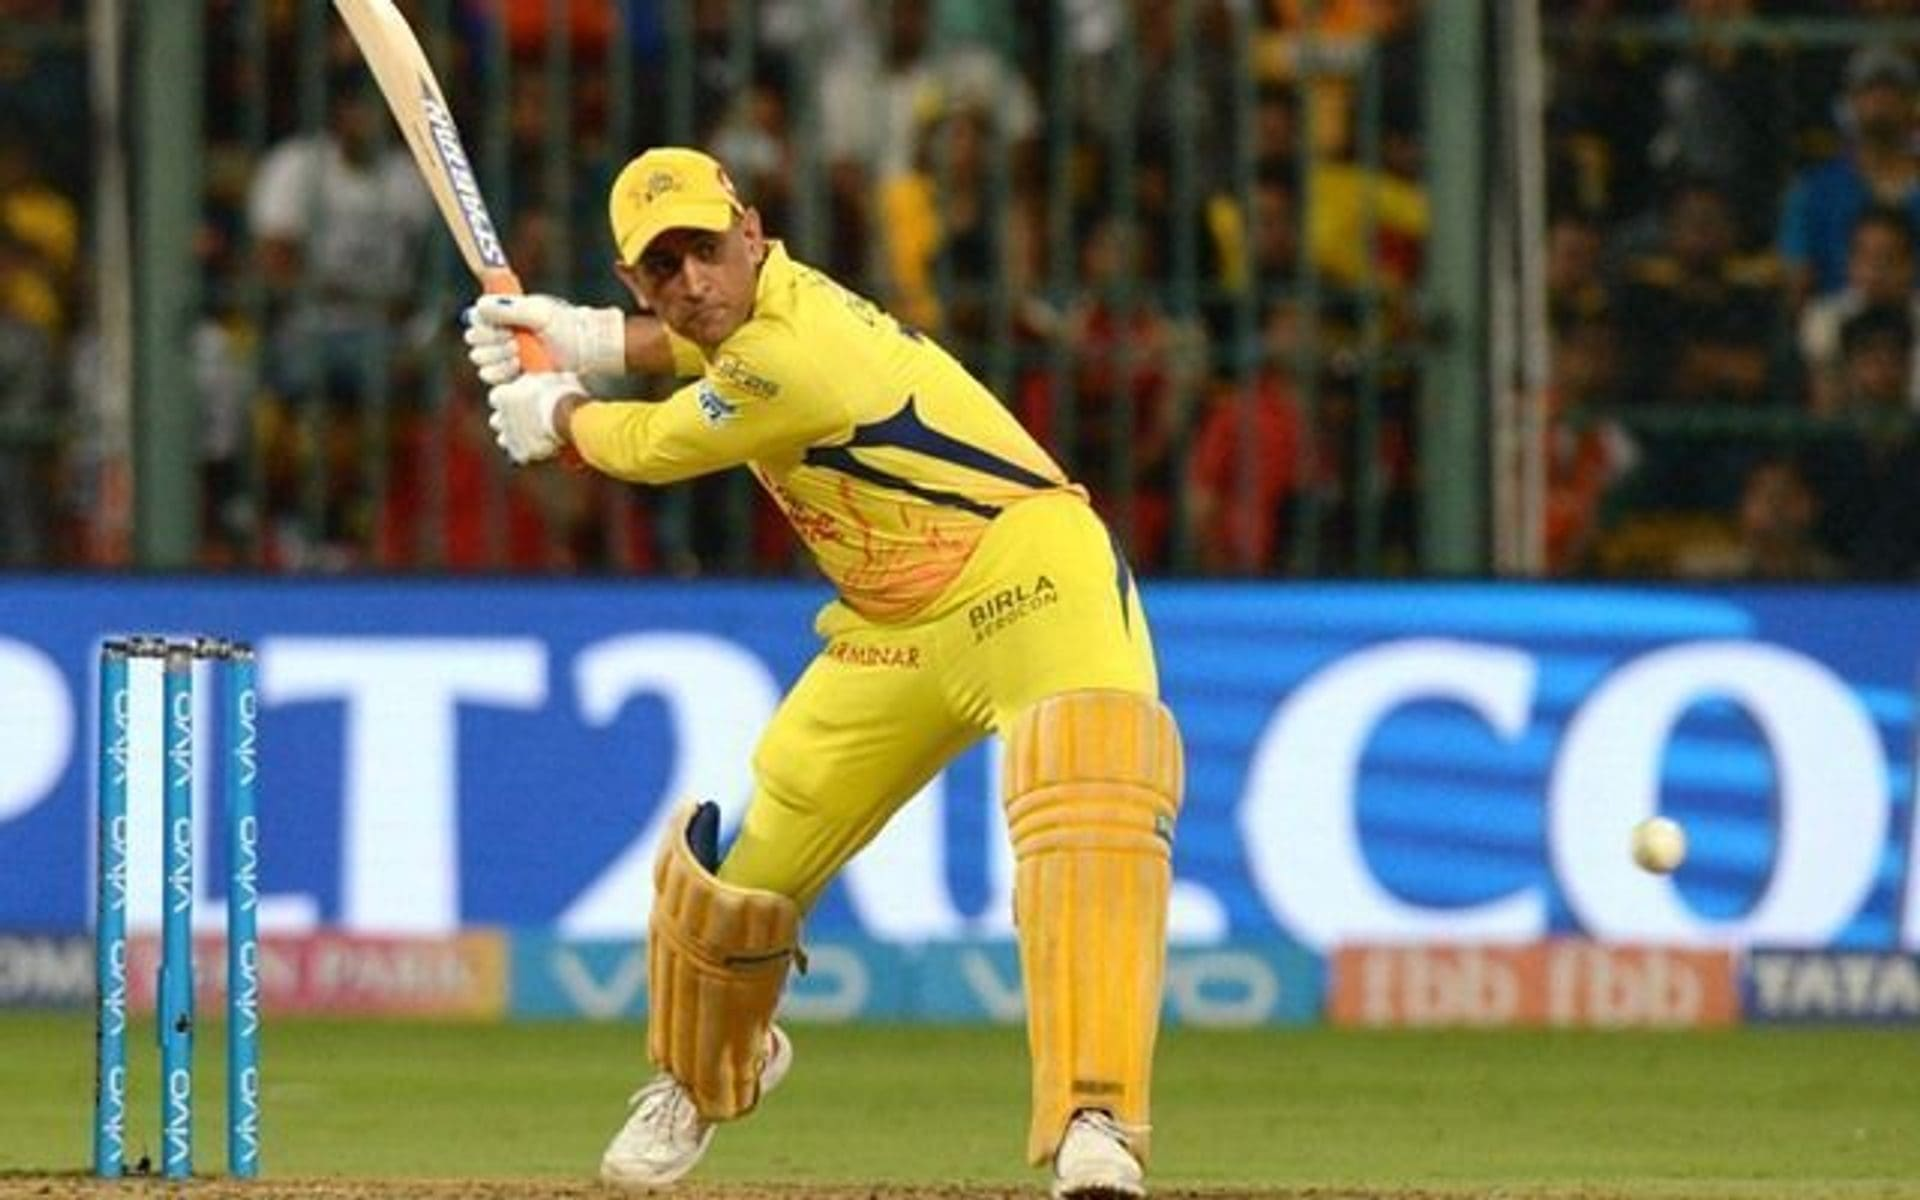 MS Dhoni - One of the Biggest and Toughest Cricket Strikers in each IPL Team